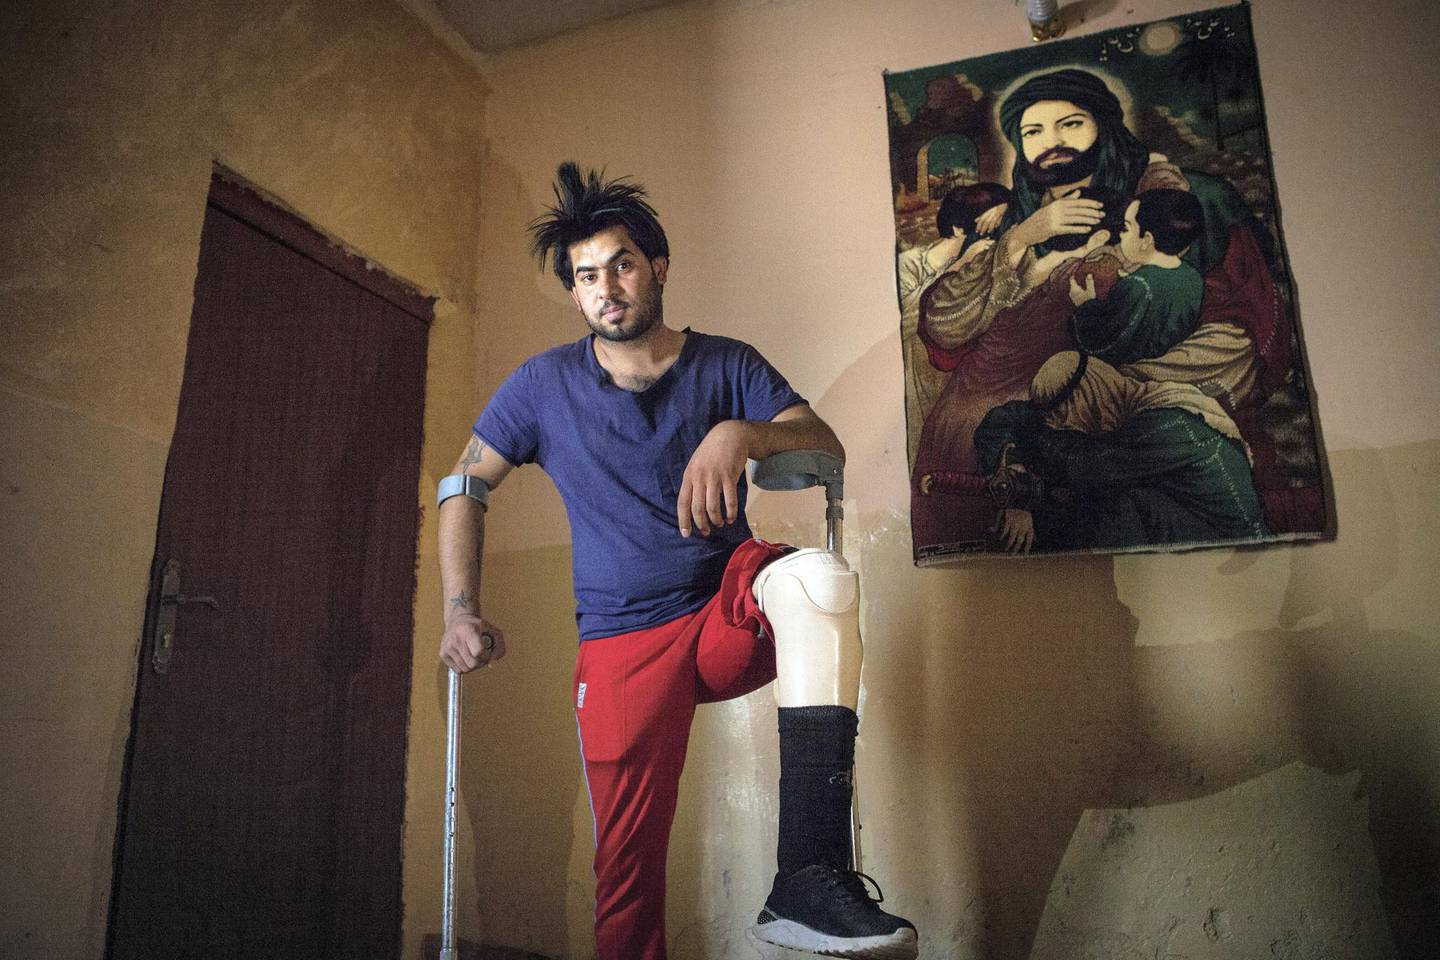 Hassam Naeem, 22, a former Iraqi Hashd Al Shaabi fighter, got injured during a military operation against the Islamic State. Amputee and jobless, Naeem lives now at his parent's house, in Basra, a major city in south Iraq. Photo by Sebastian Castelier